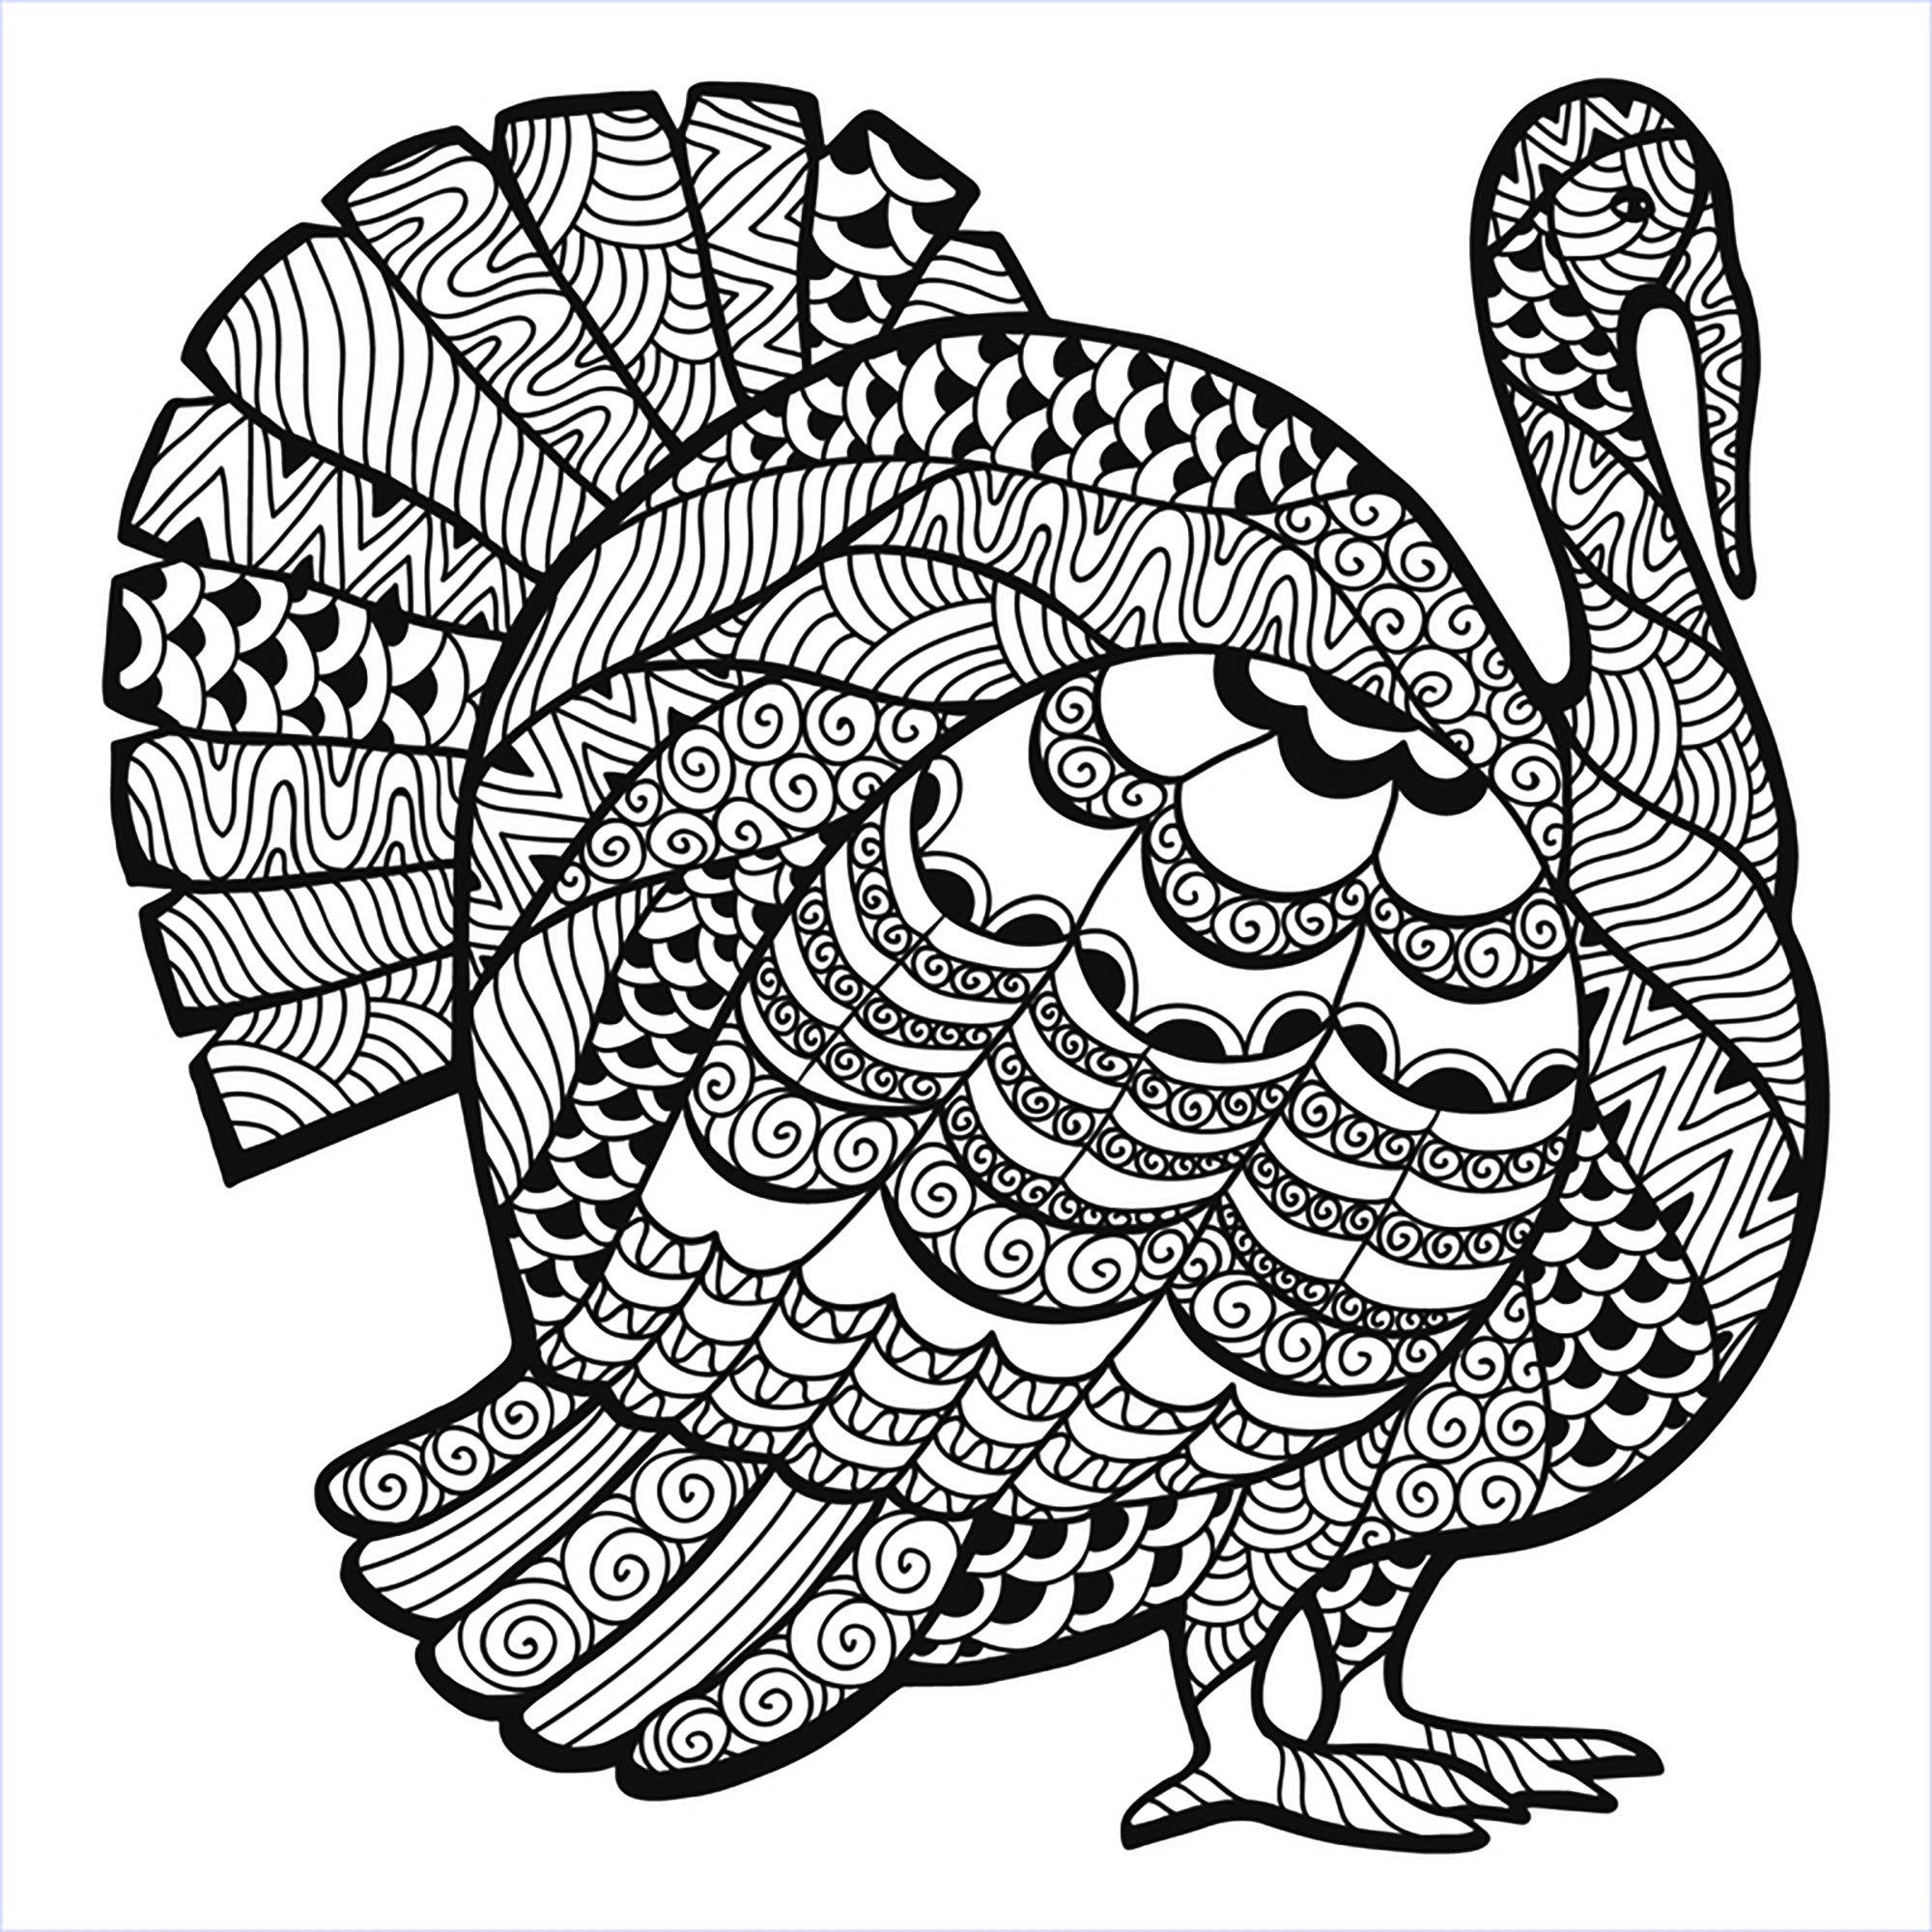 thanksgiving coloring pages printable Turkey Zentangle Coloring sheet   Thanksgiving Adult Coloring Pages thanksgiving coloring pages printable